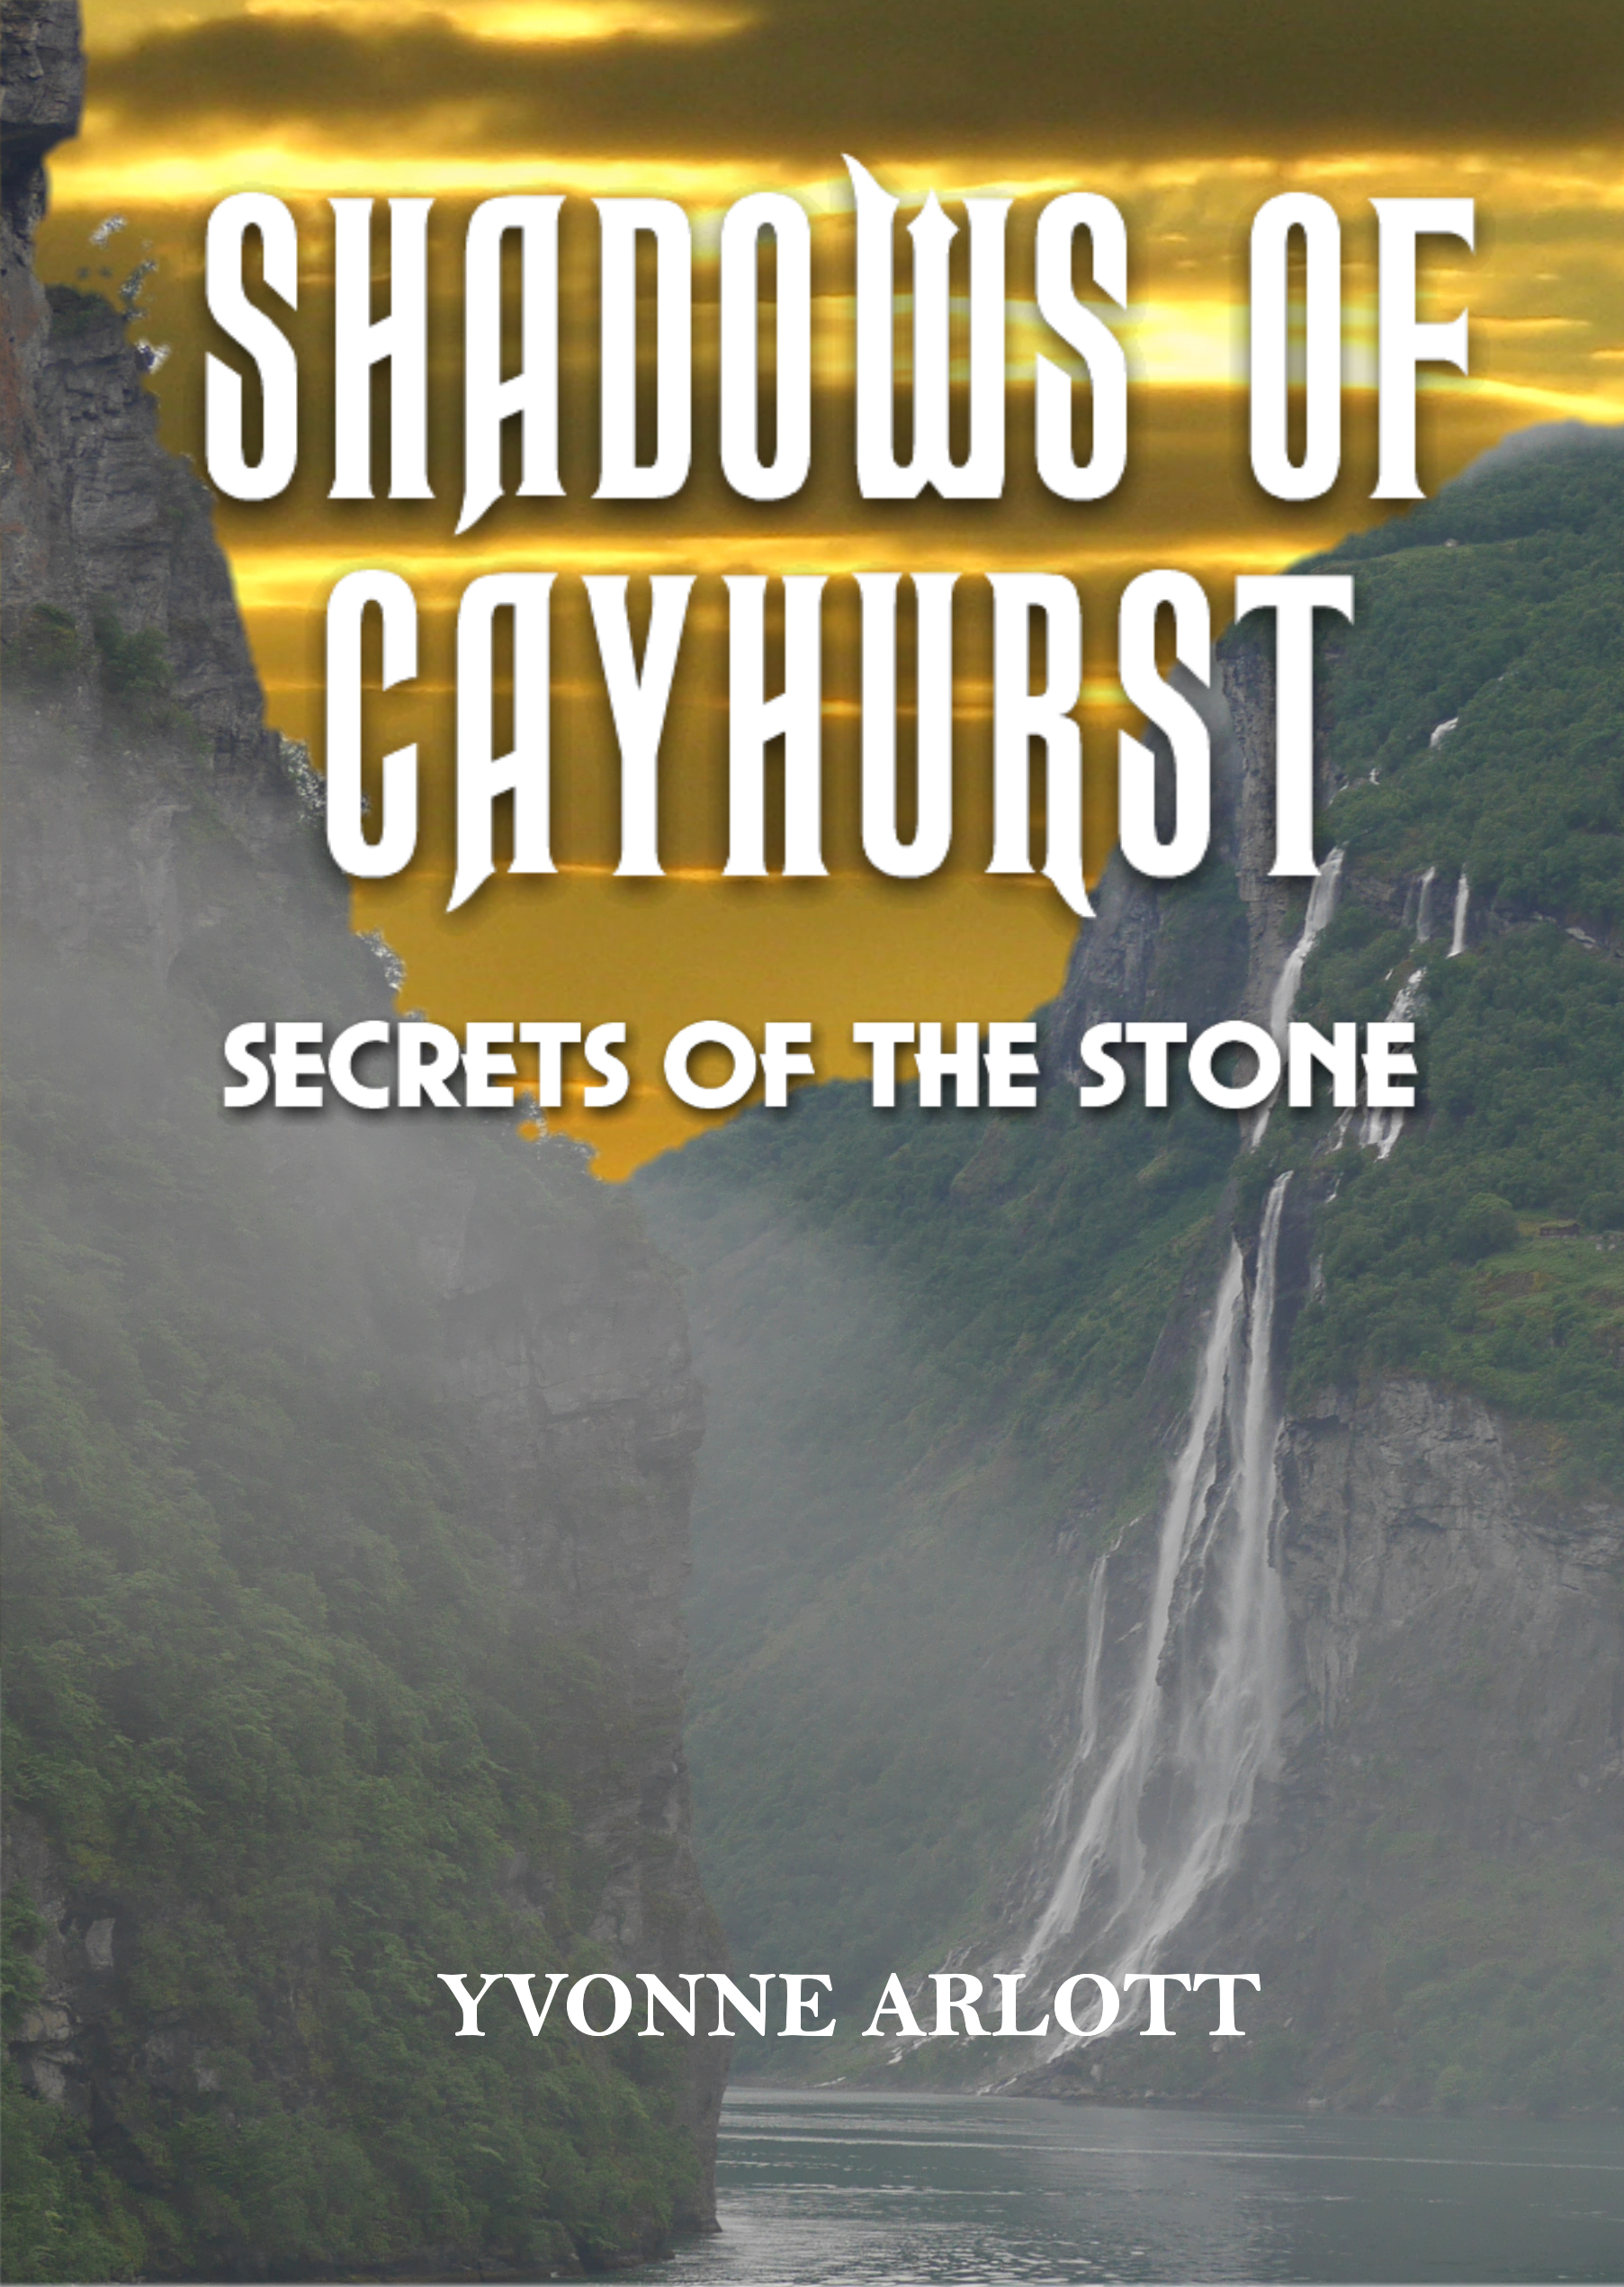 Secrets Of The Stone (Shadows Of Cayhurst, #2)